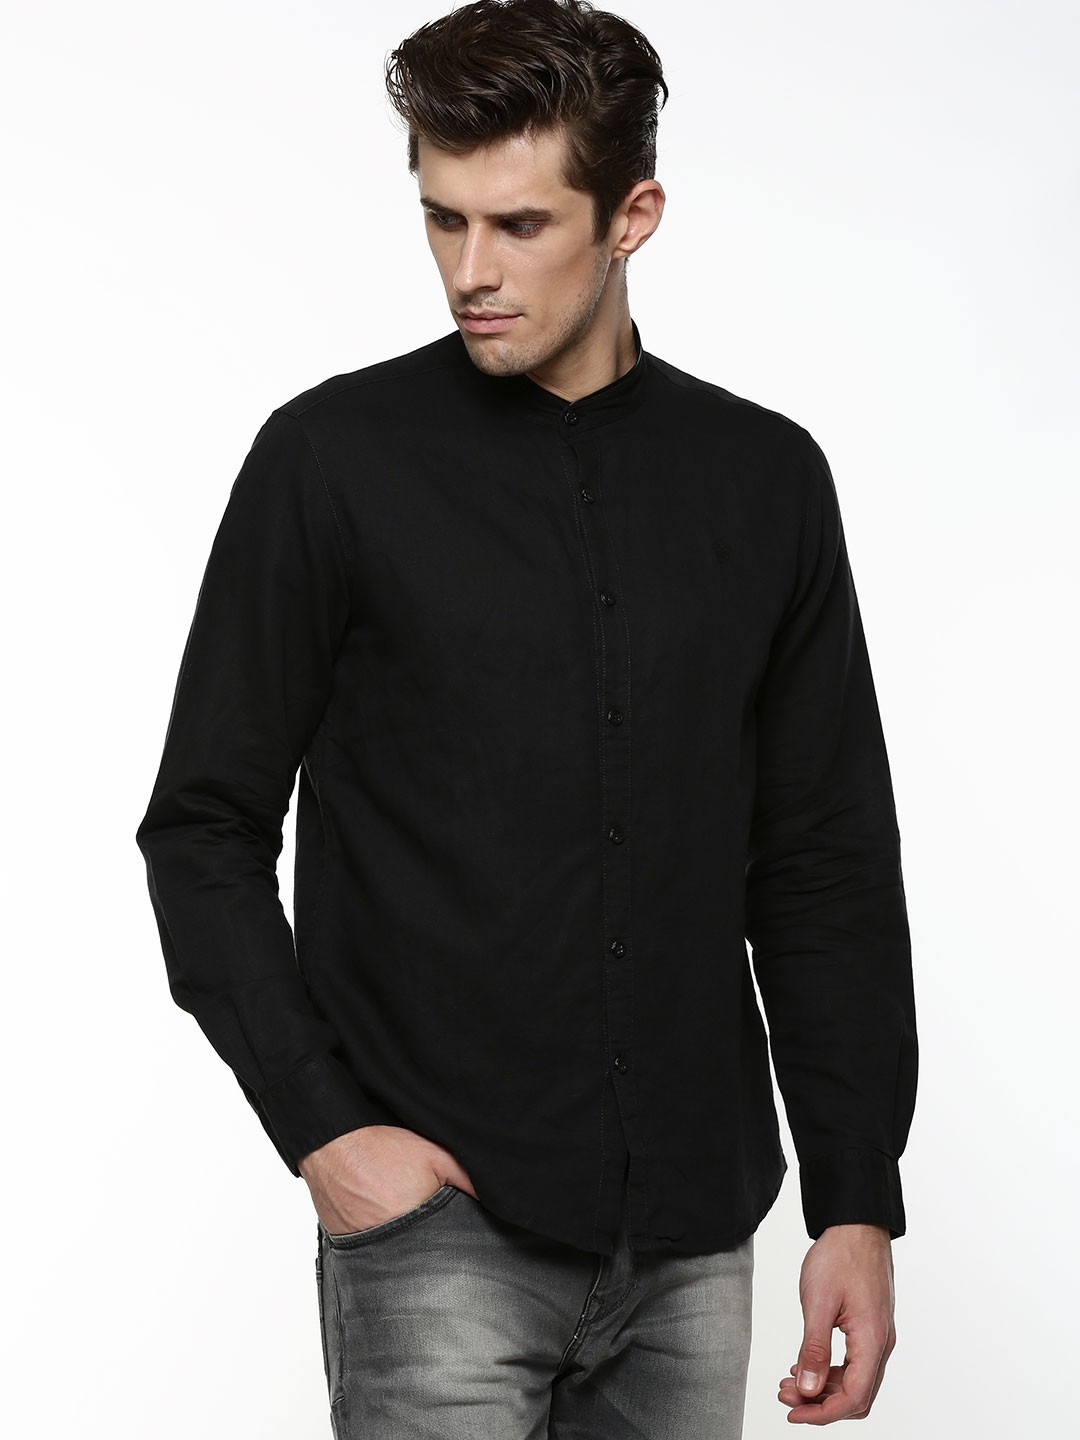 Shop for and buy mandarin collar shirt online at Macy's. Find mandarin collar shirt at Macy's.